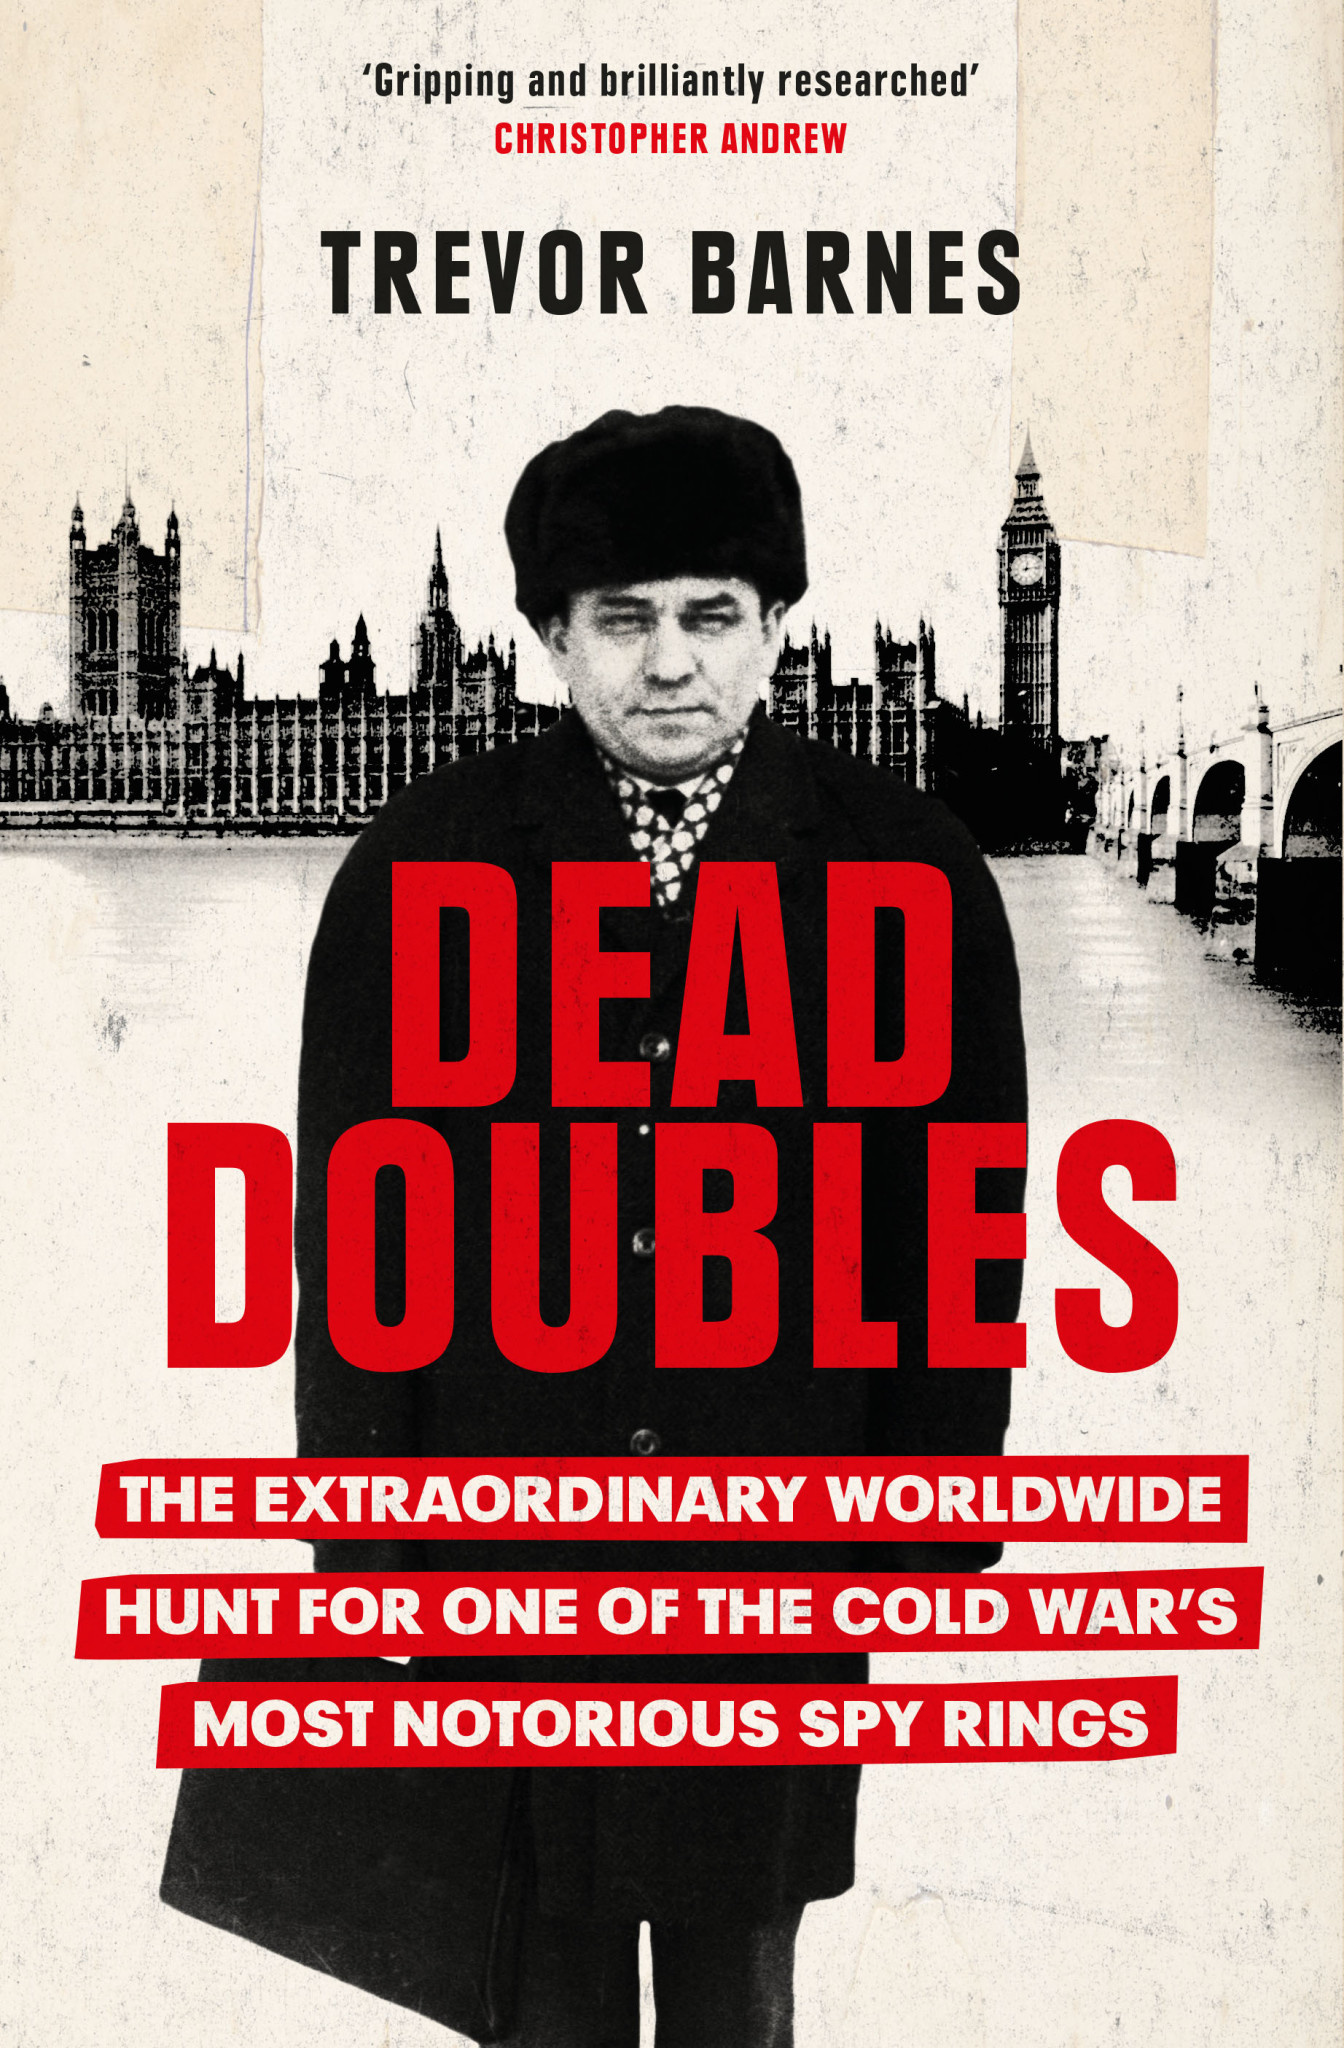 Dead Doubles: The Extraordinary Worldwide Hunt for One of the Cold War's Most Notorious Spy Rings Author Trevor Barnes